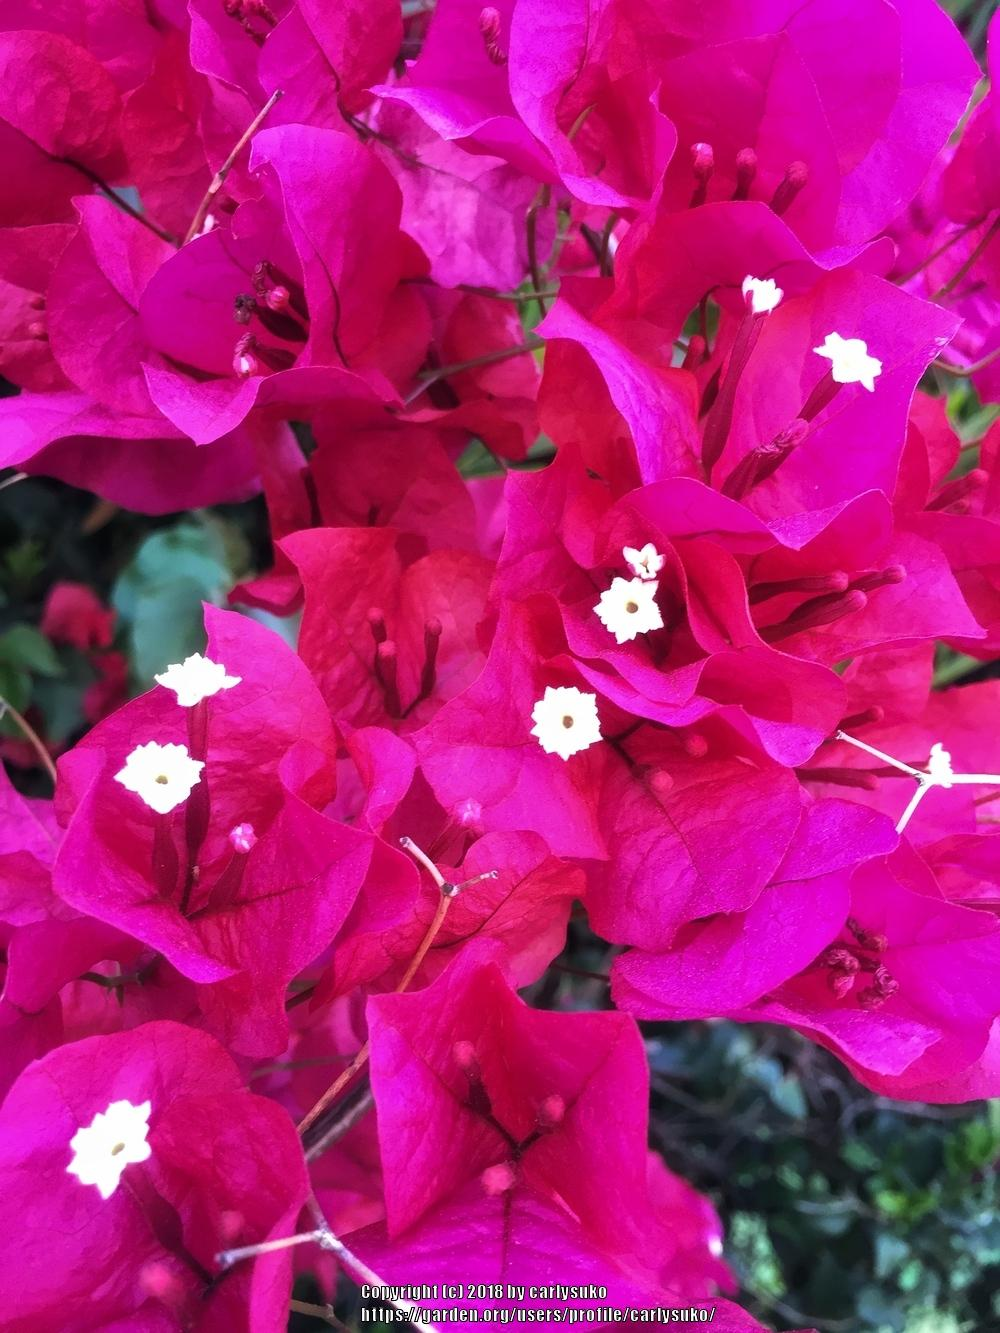 Photo of Bougainvilleas (Bougainvillea) uploaded by carlysuko